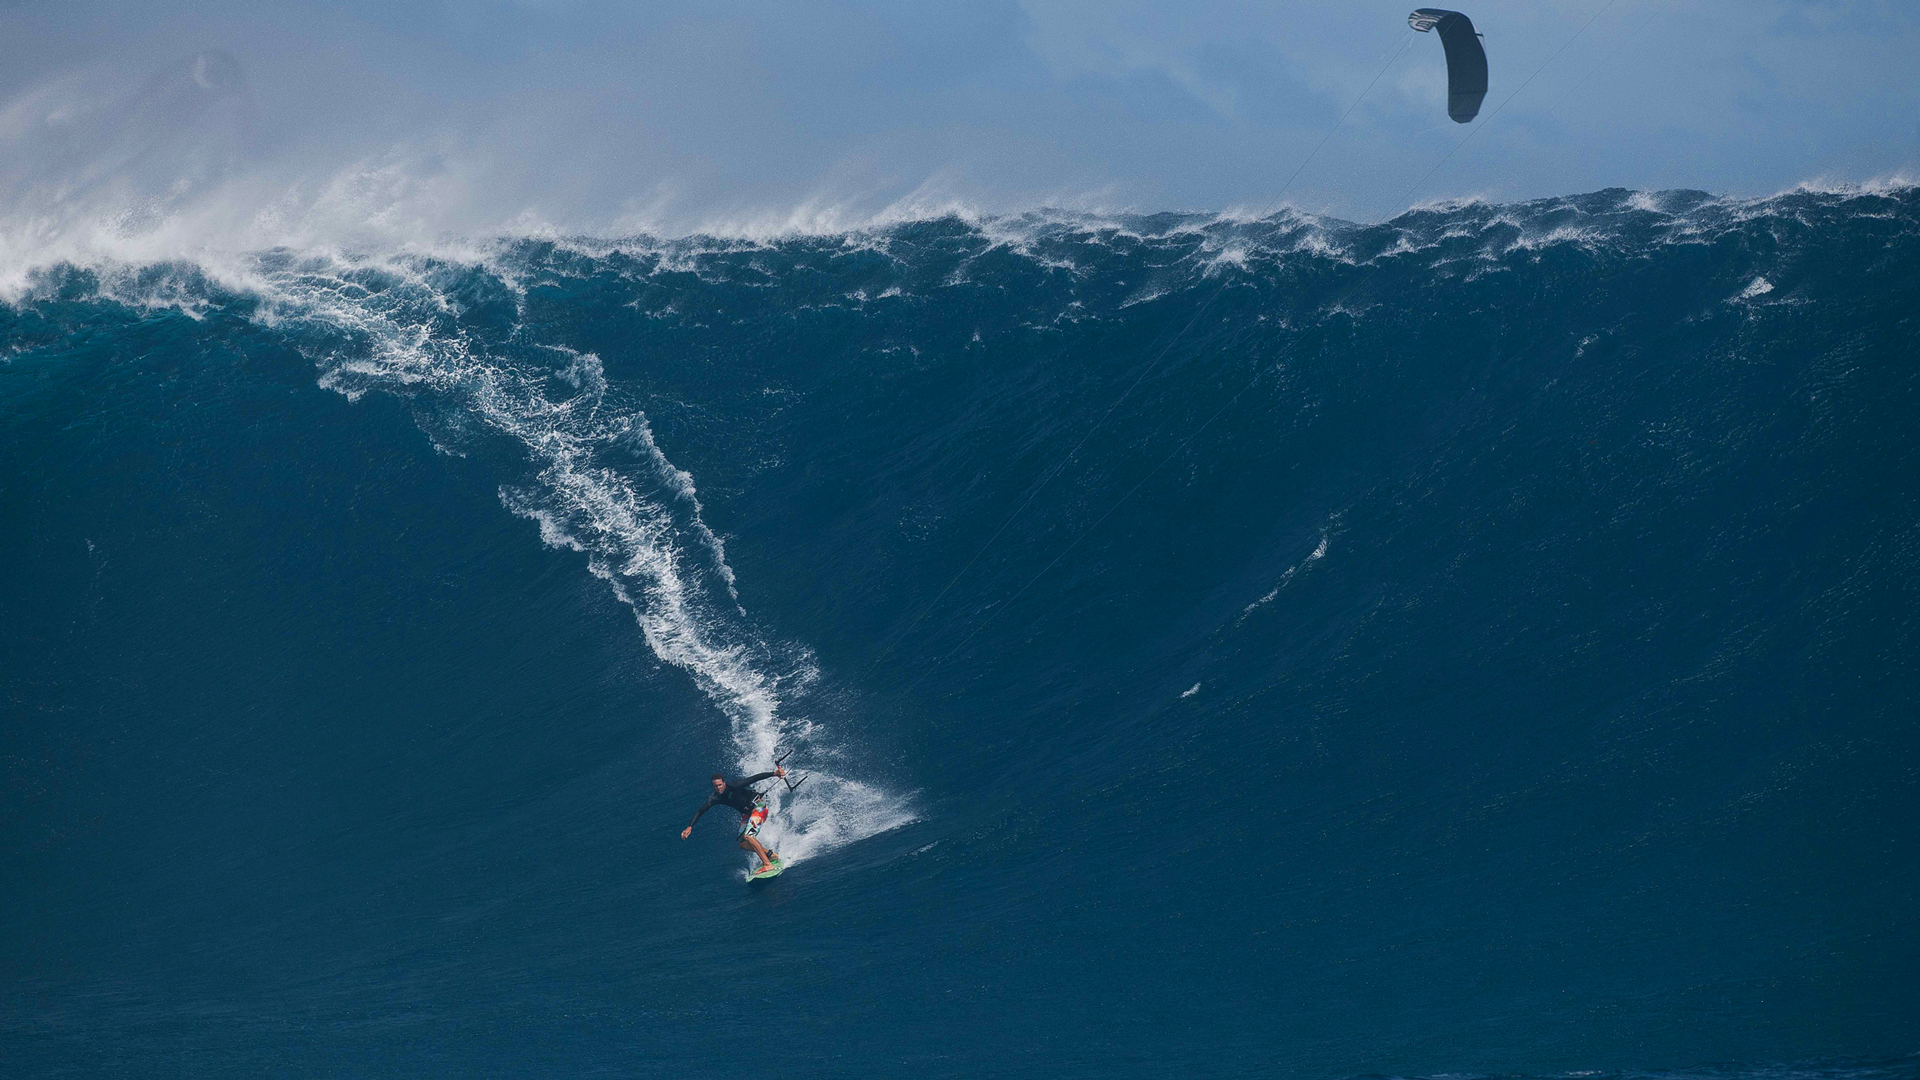 kitesurf wallpaper image - Ben Wilson on what must be the biggest wave ever kitesurfed - in resolution: High Definition - HD 16:9 1920 X 1080